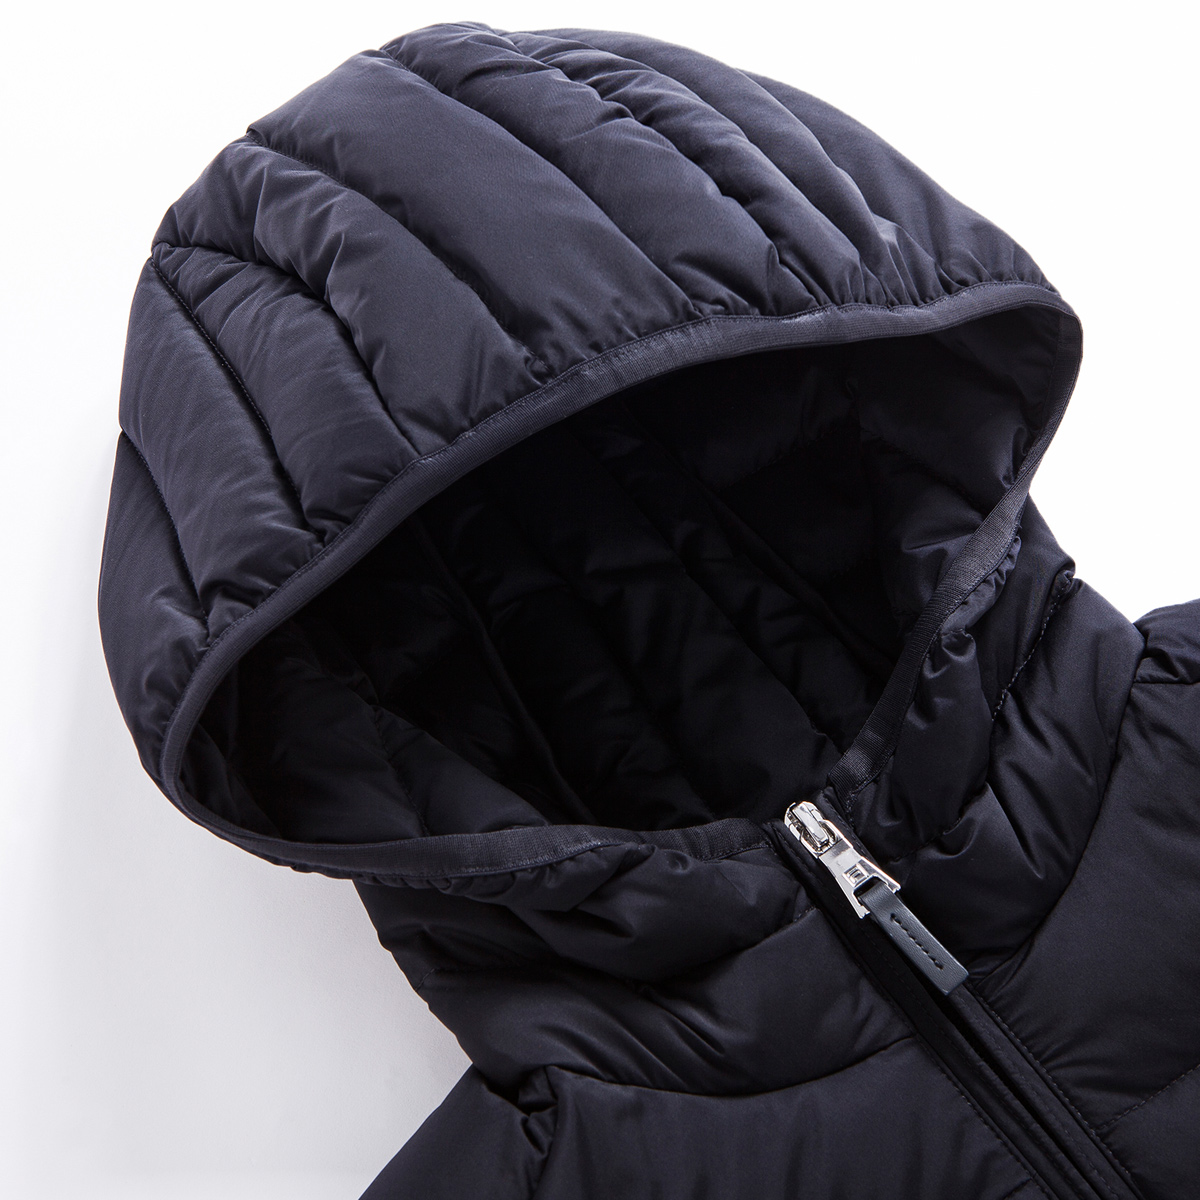 8cb258f91f9d ... lightbox moreview · lightbox moreview. PrevNext. FILA Fei Music female  down jacket winter new hooded jacket warm wind ...